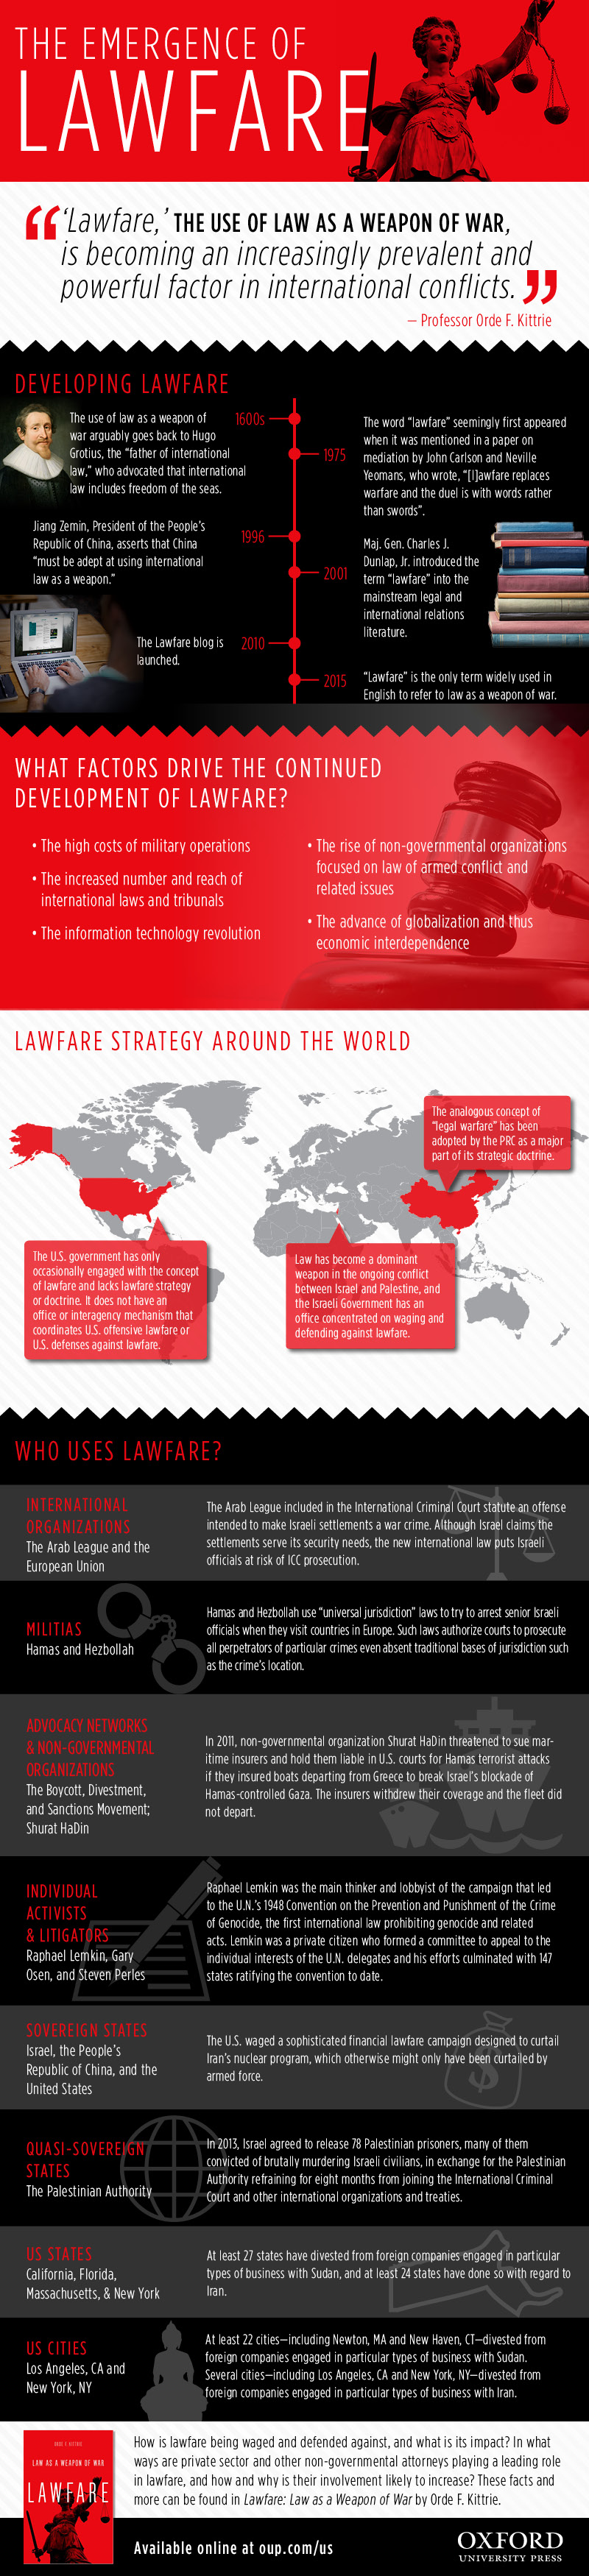 Lawfare law as weapon of war infographics